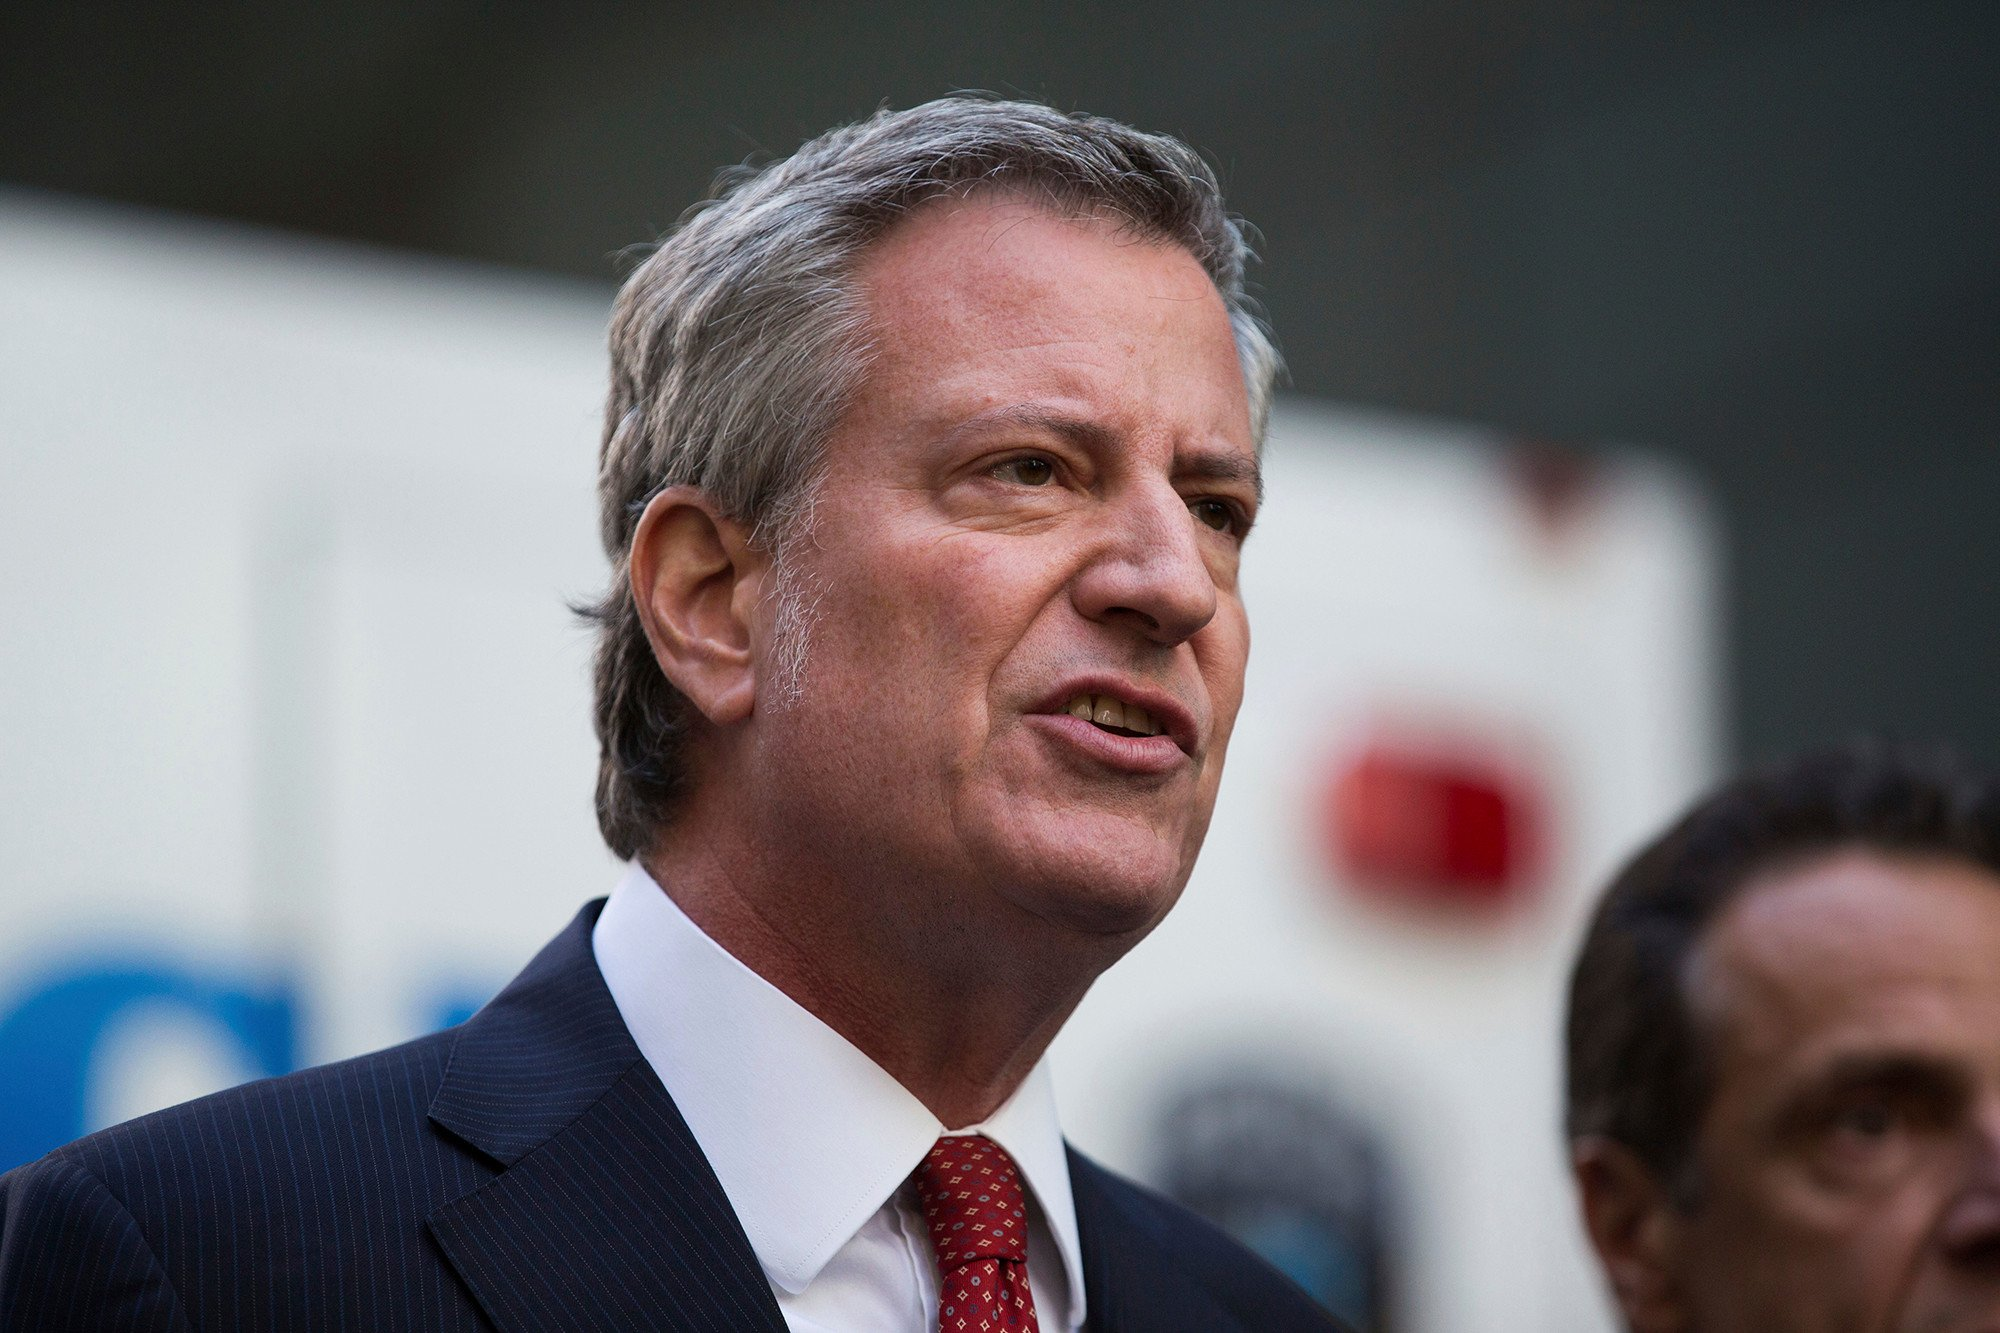 De Blasio: I don't get enough credit for my progressive achievements